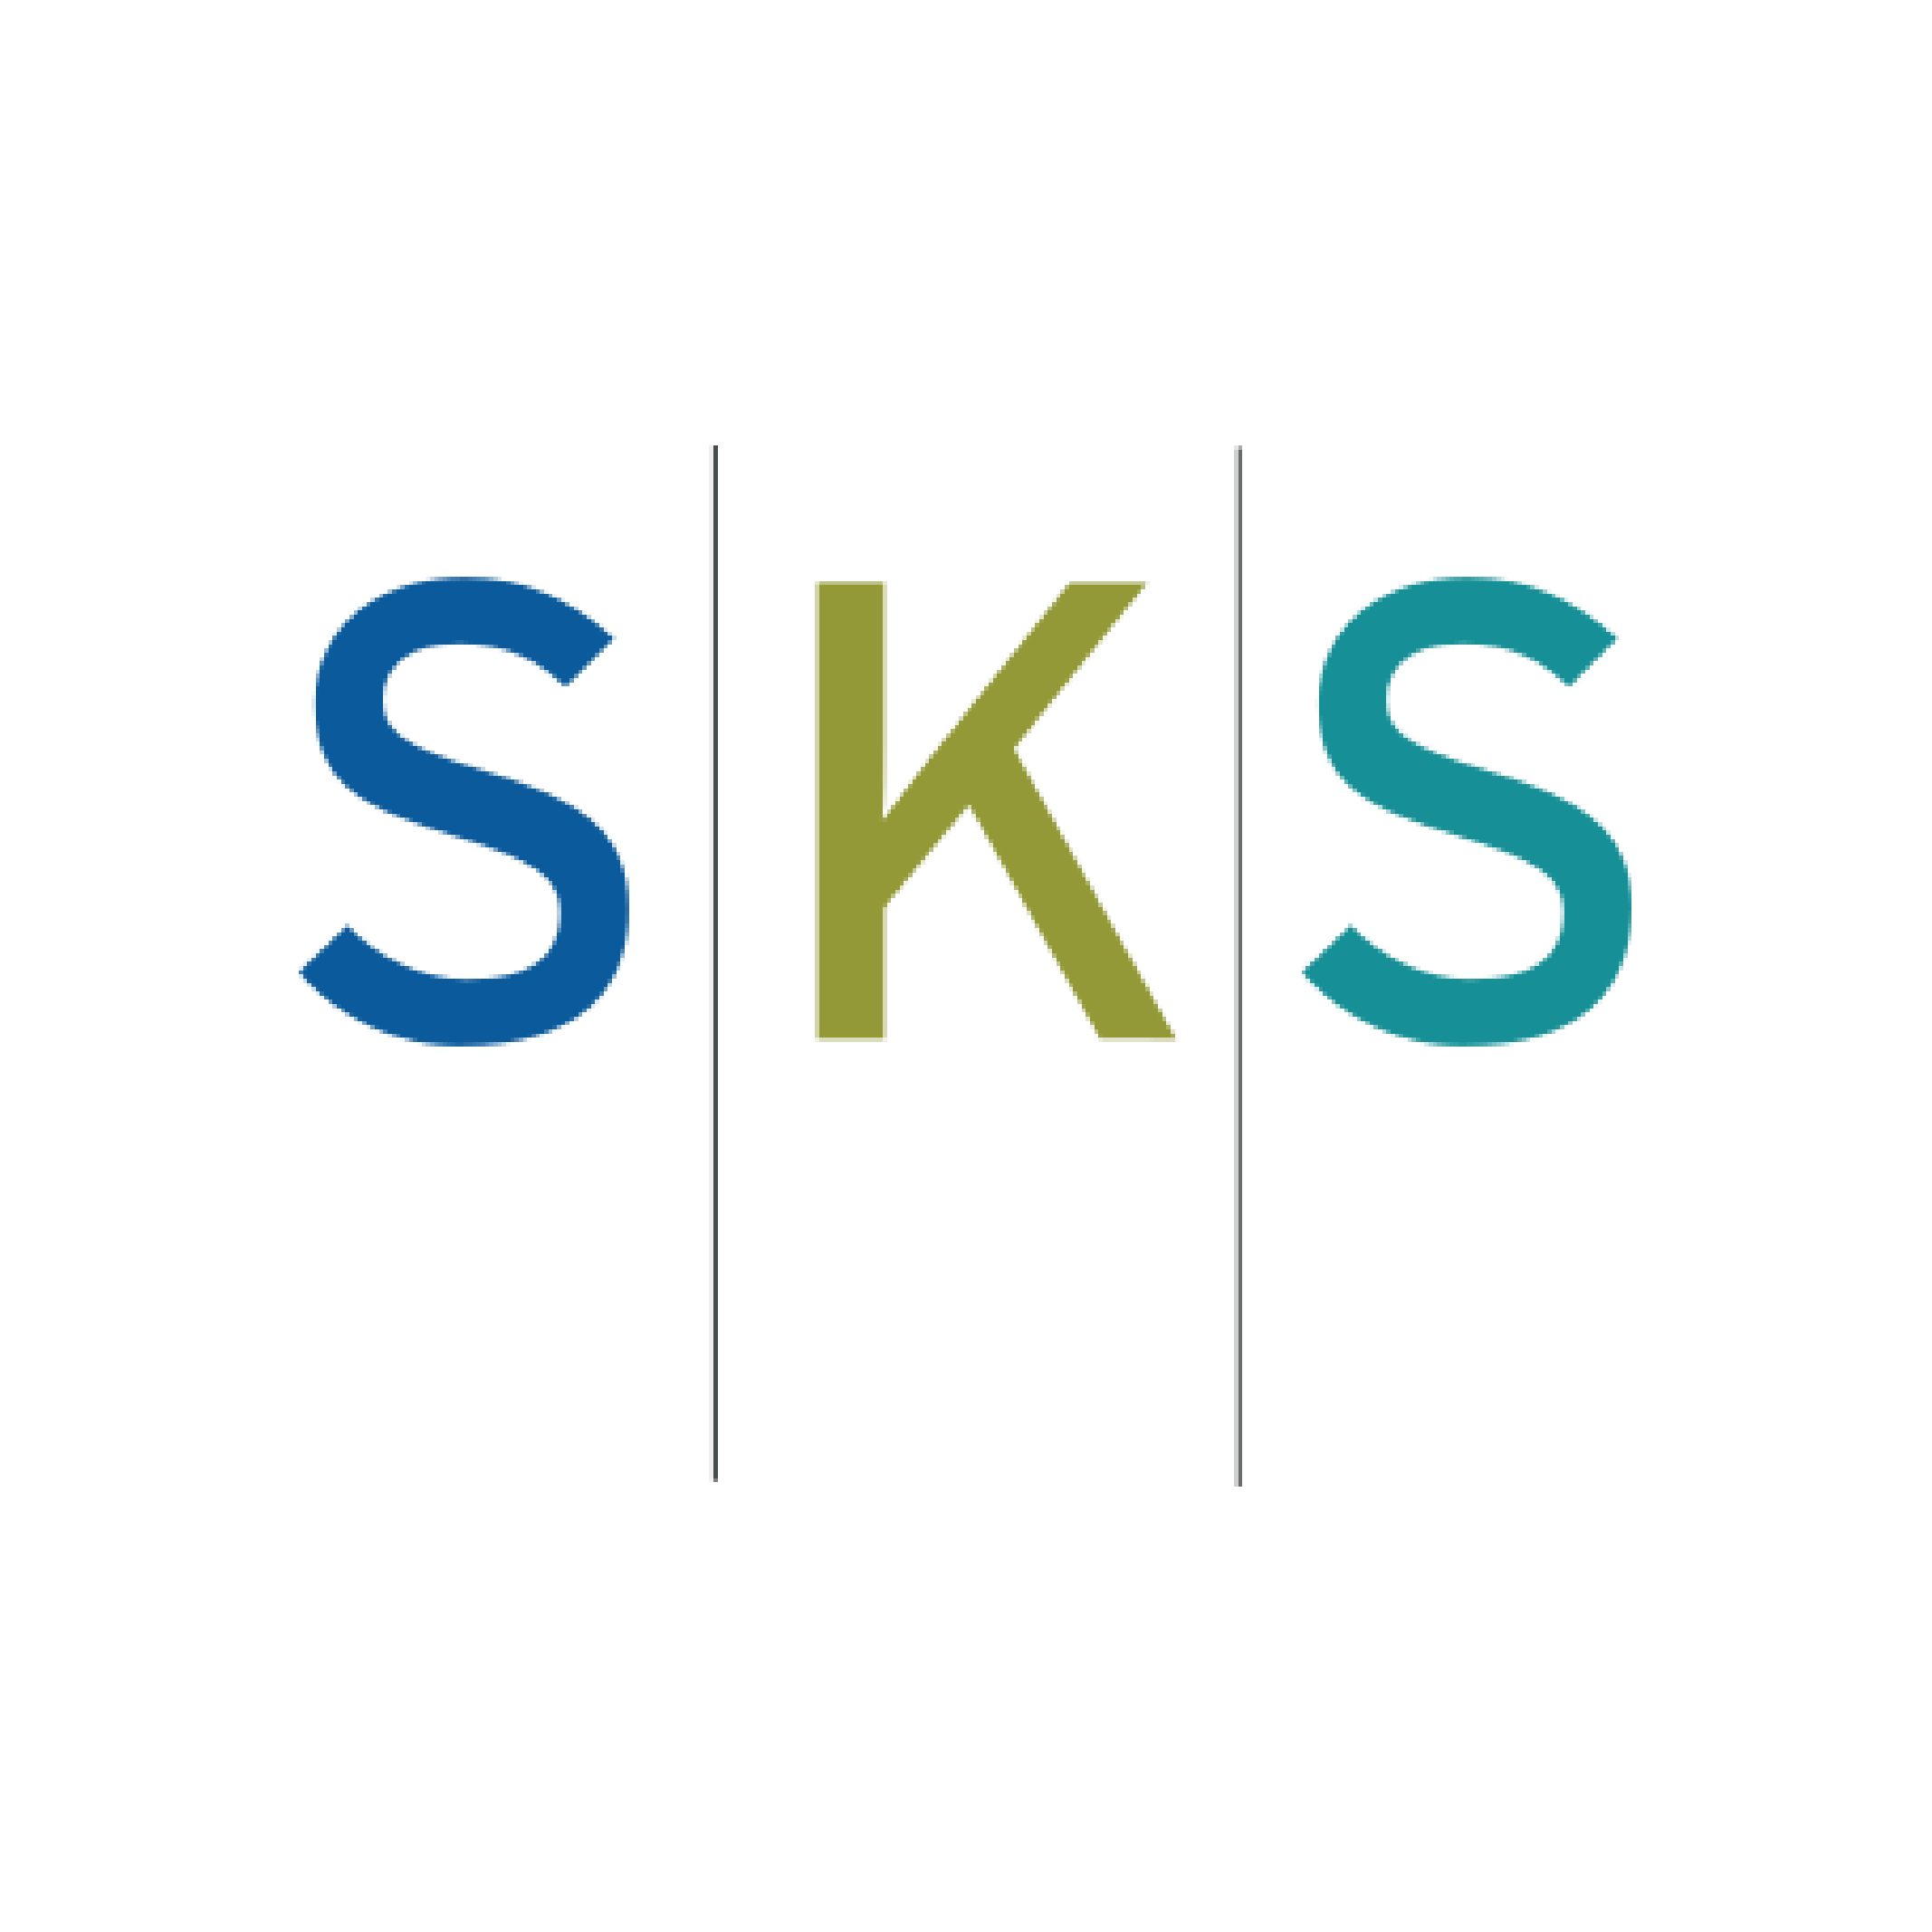 SKS Partners is a San Francisco based Real Estate Developer that builds spaces for the knowledge economy. Founded in 1992, SKS set out to establish a different approach to development in the Bay Area by having a positive impact on the built environment. Since then, SKS has developed some of the most innovative and durable properties in the Bay Area, providing a variety of buildings for the industries and entrepreneurs who are changing the way we live our lives.